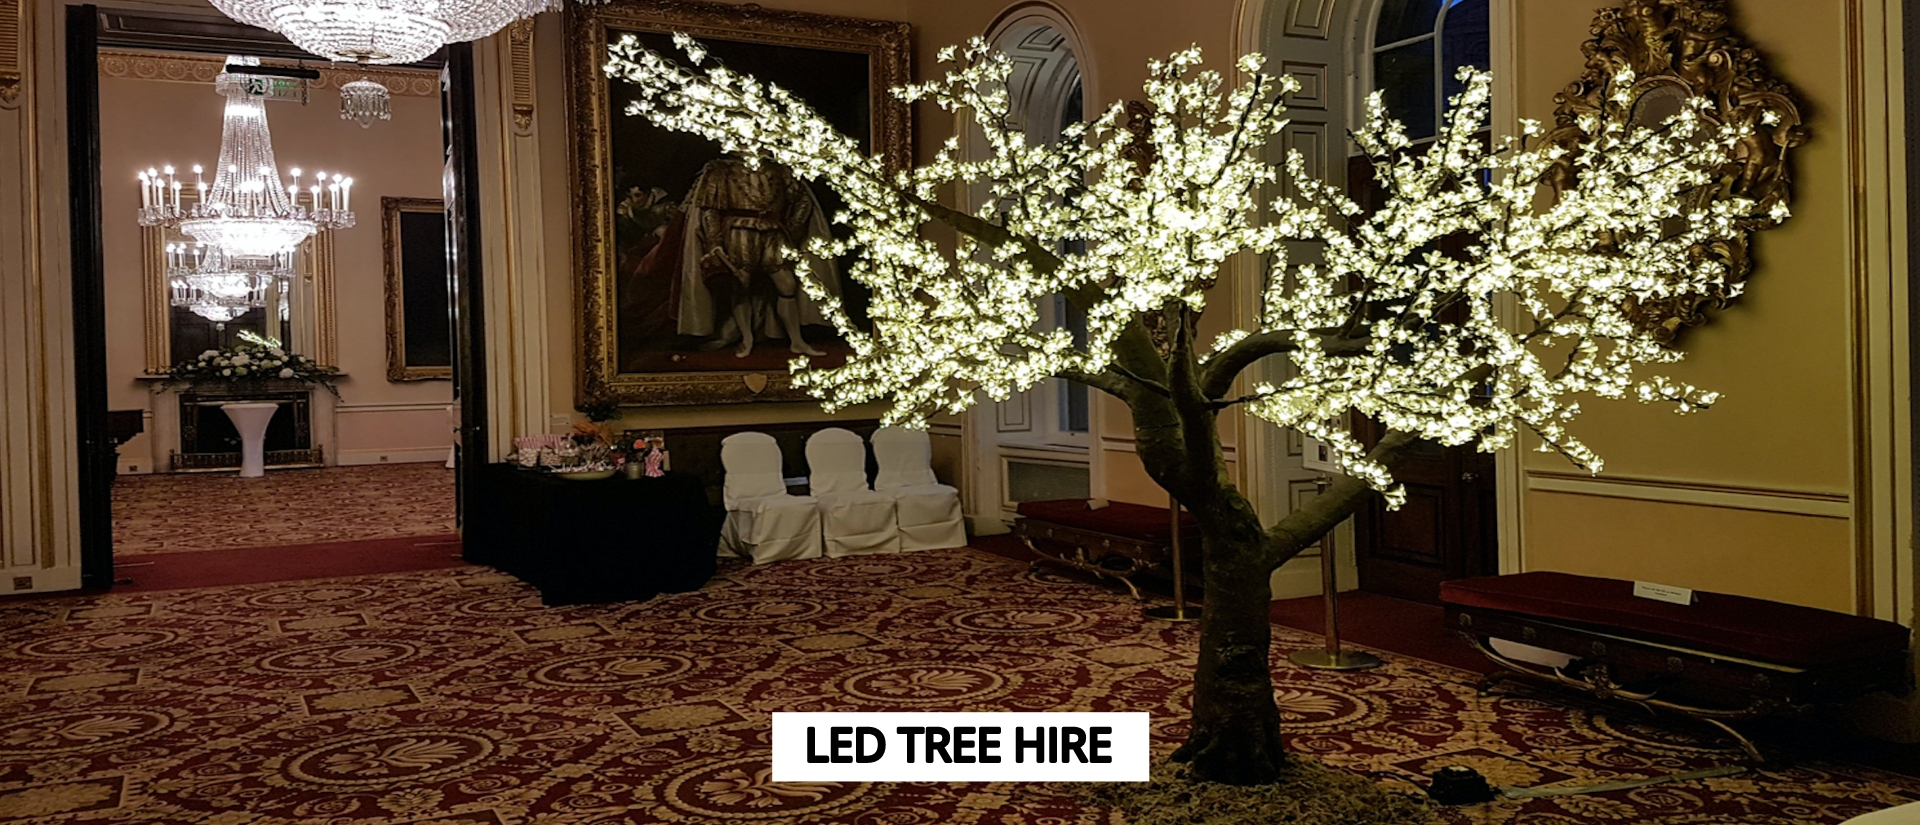 Event Management, Furniture and Prop Hire Specialists